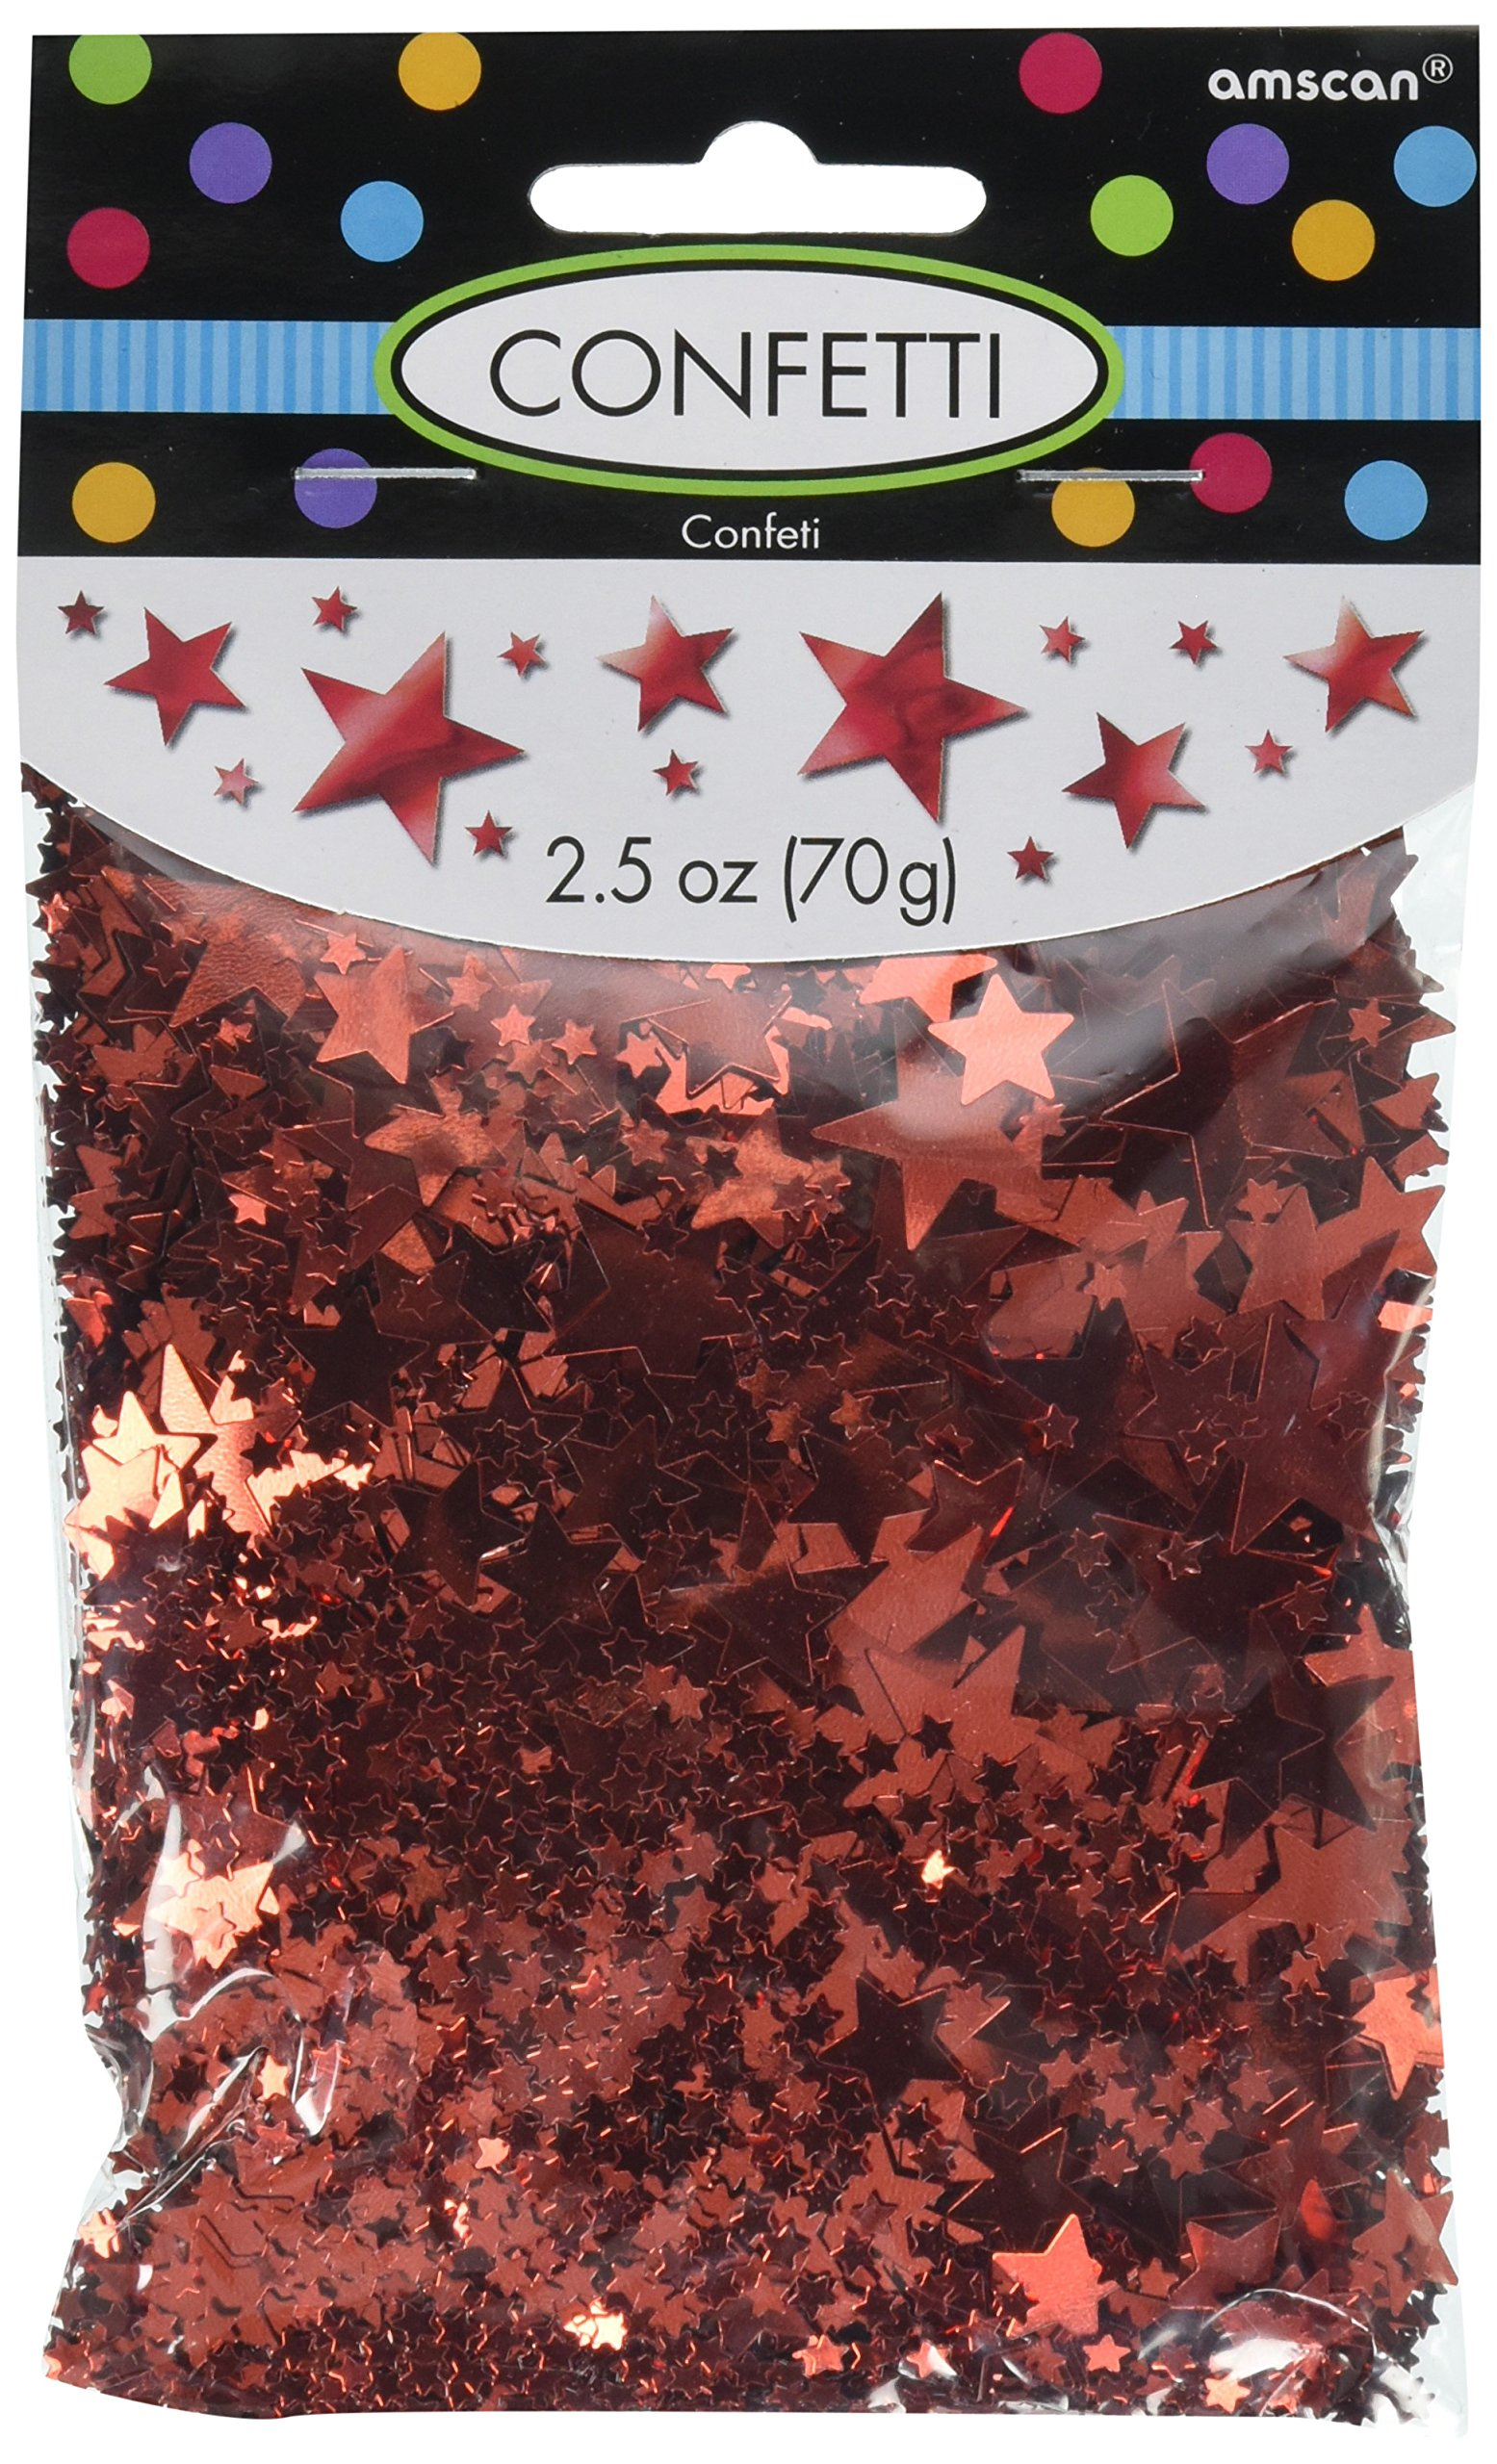 Amscan Party Fun Decorations Metallic Star Confetti Pack, Red, Foil, 0.25 Ounces Childrens (12 Piece) by Amscan